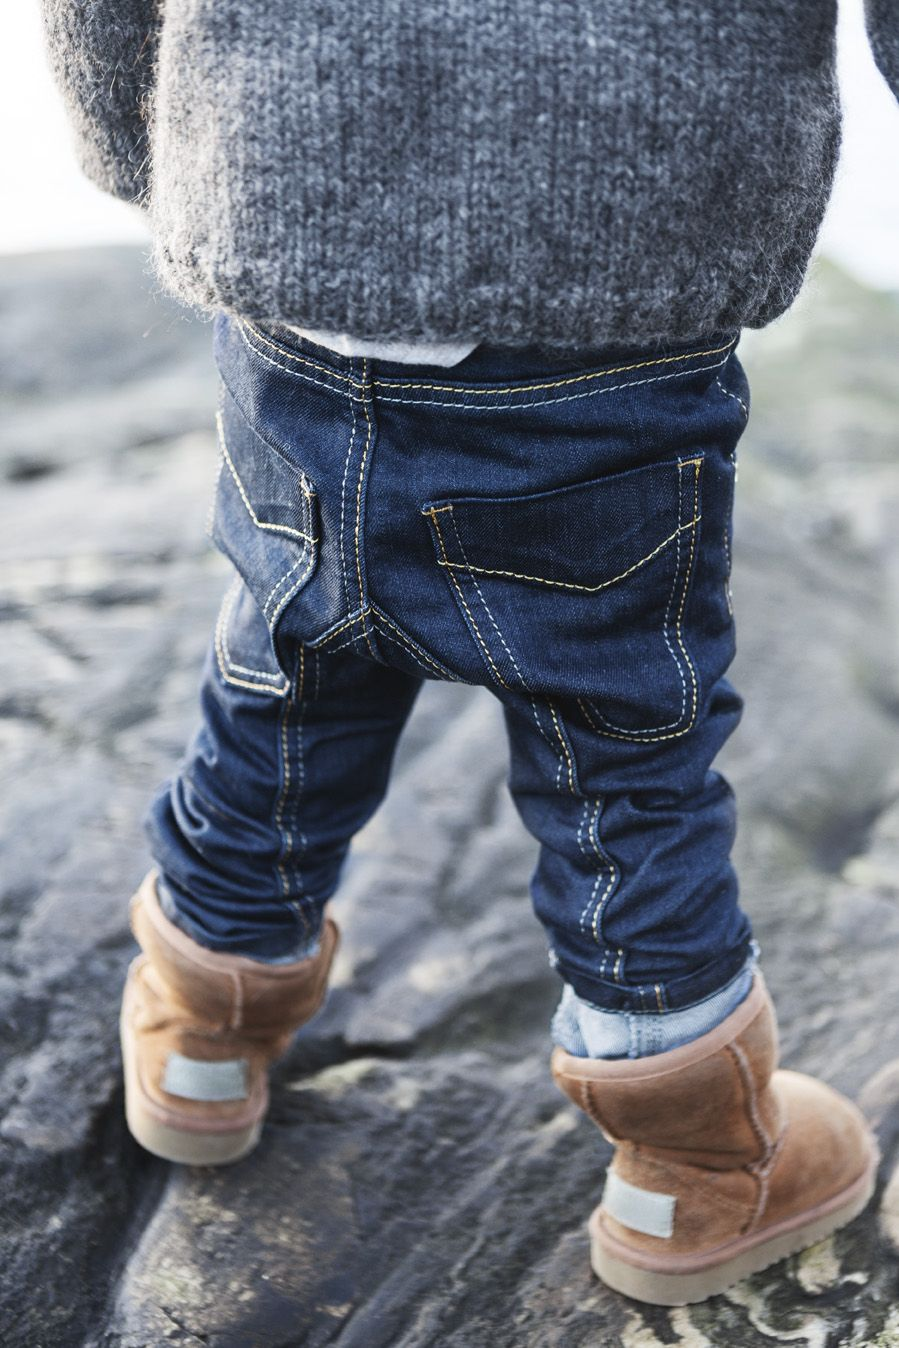 Kids are the people that look cute in uggs. | Cool Boys Clothes u2661 | Pinterest | Boy fashion ...